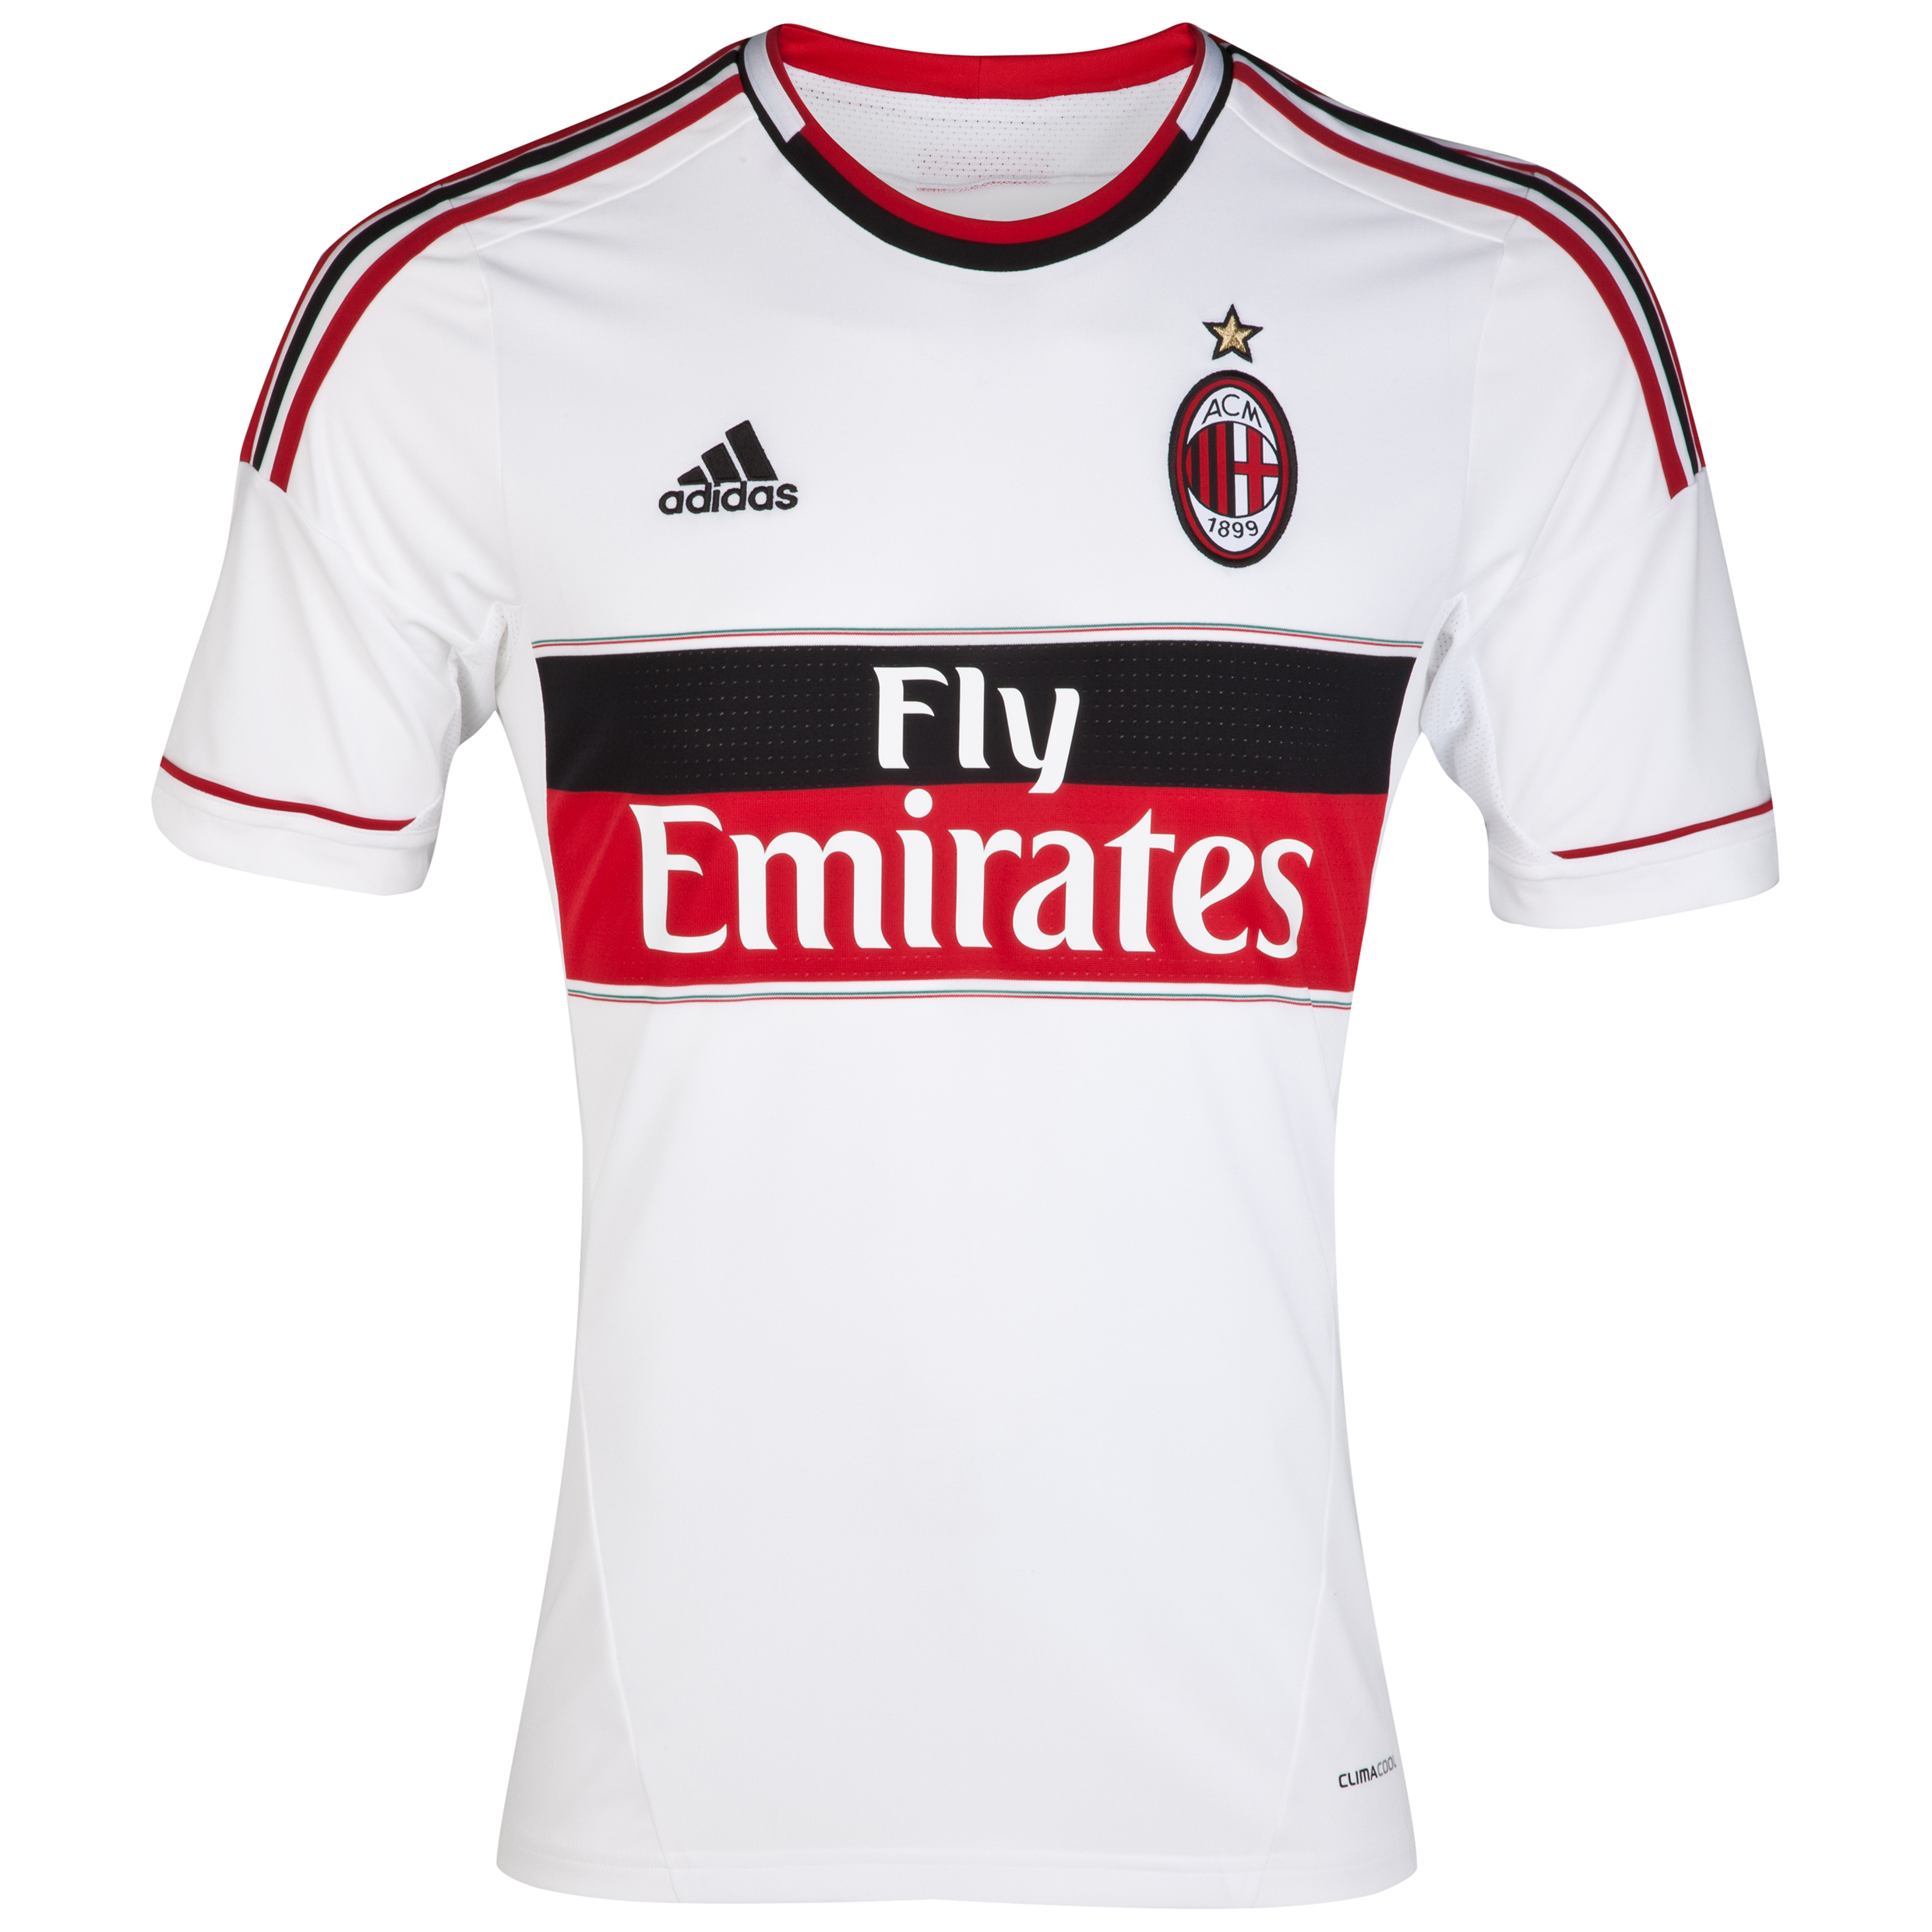 AC Milan Away Shirt 2012/13